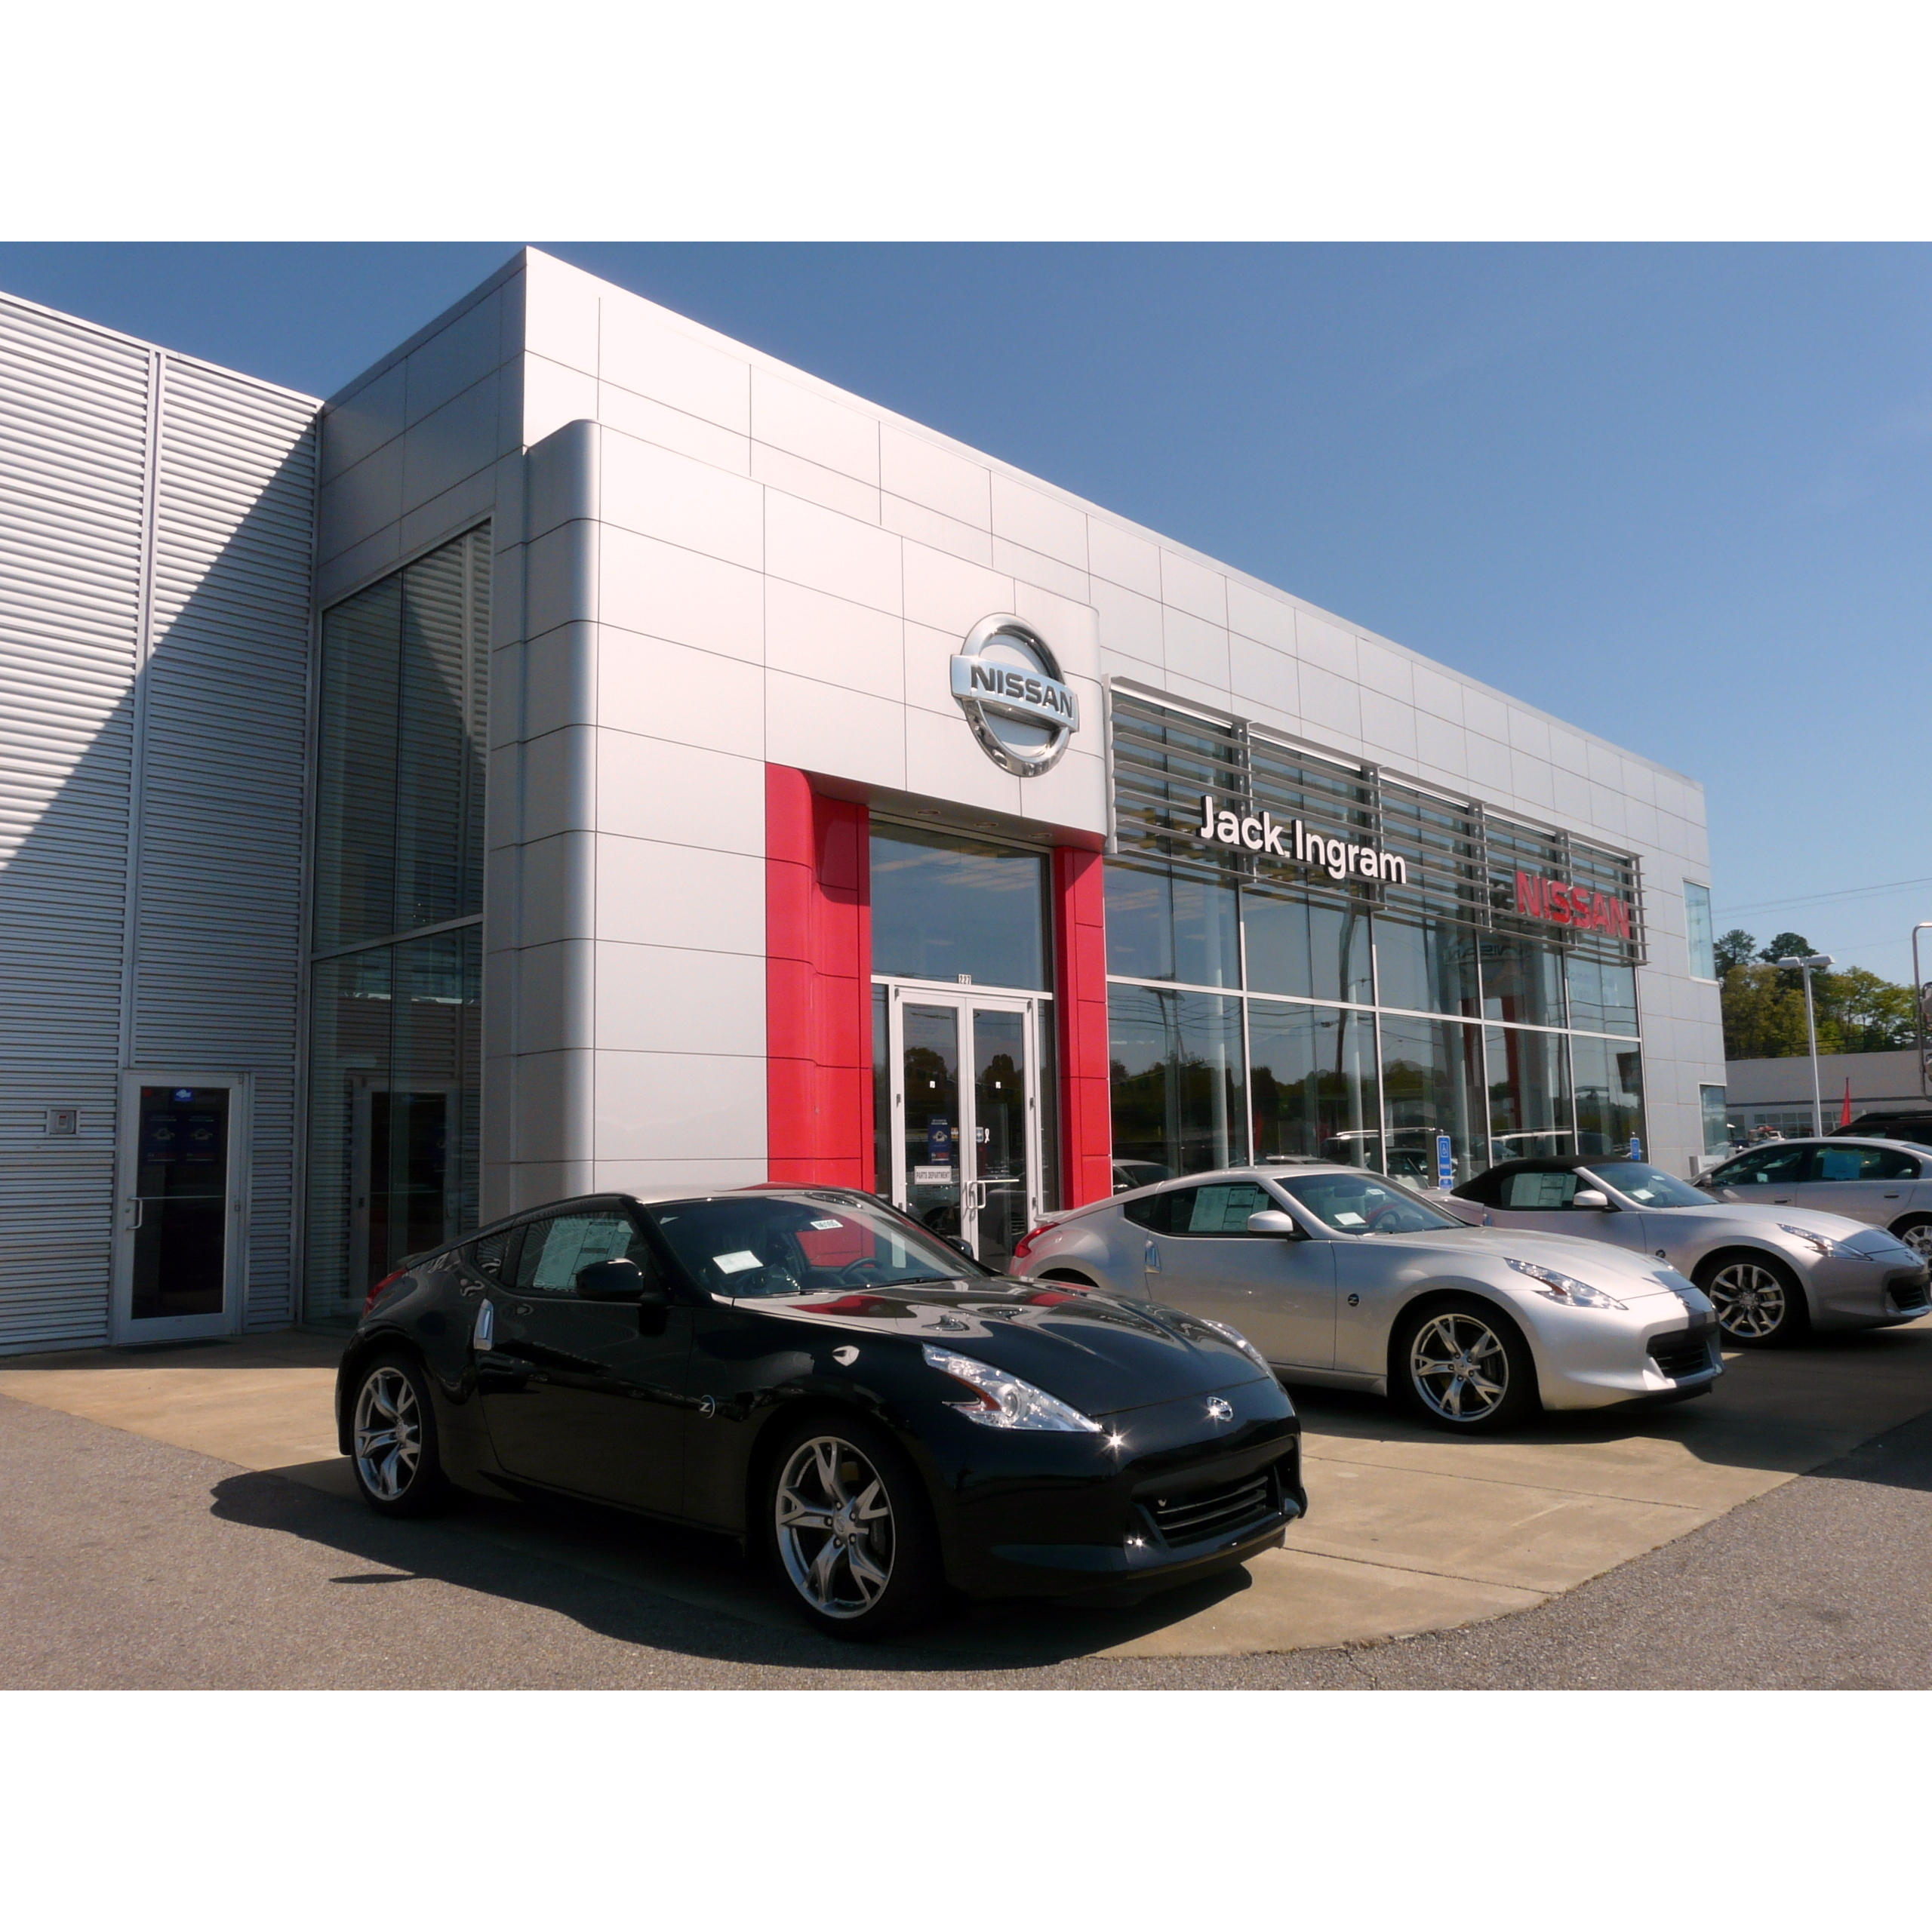 Jack Ingram Volkswagen At 255 Eastern Blvd, Montgomery, AL